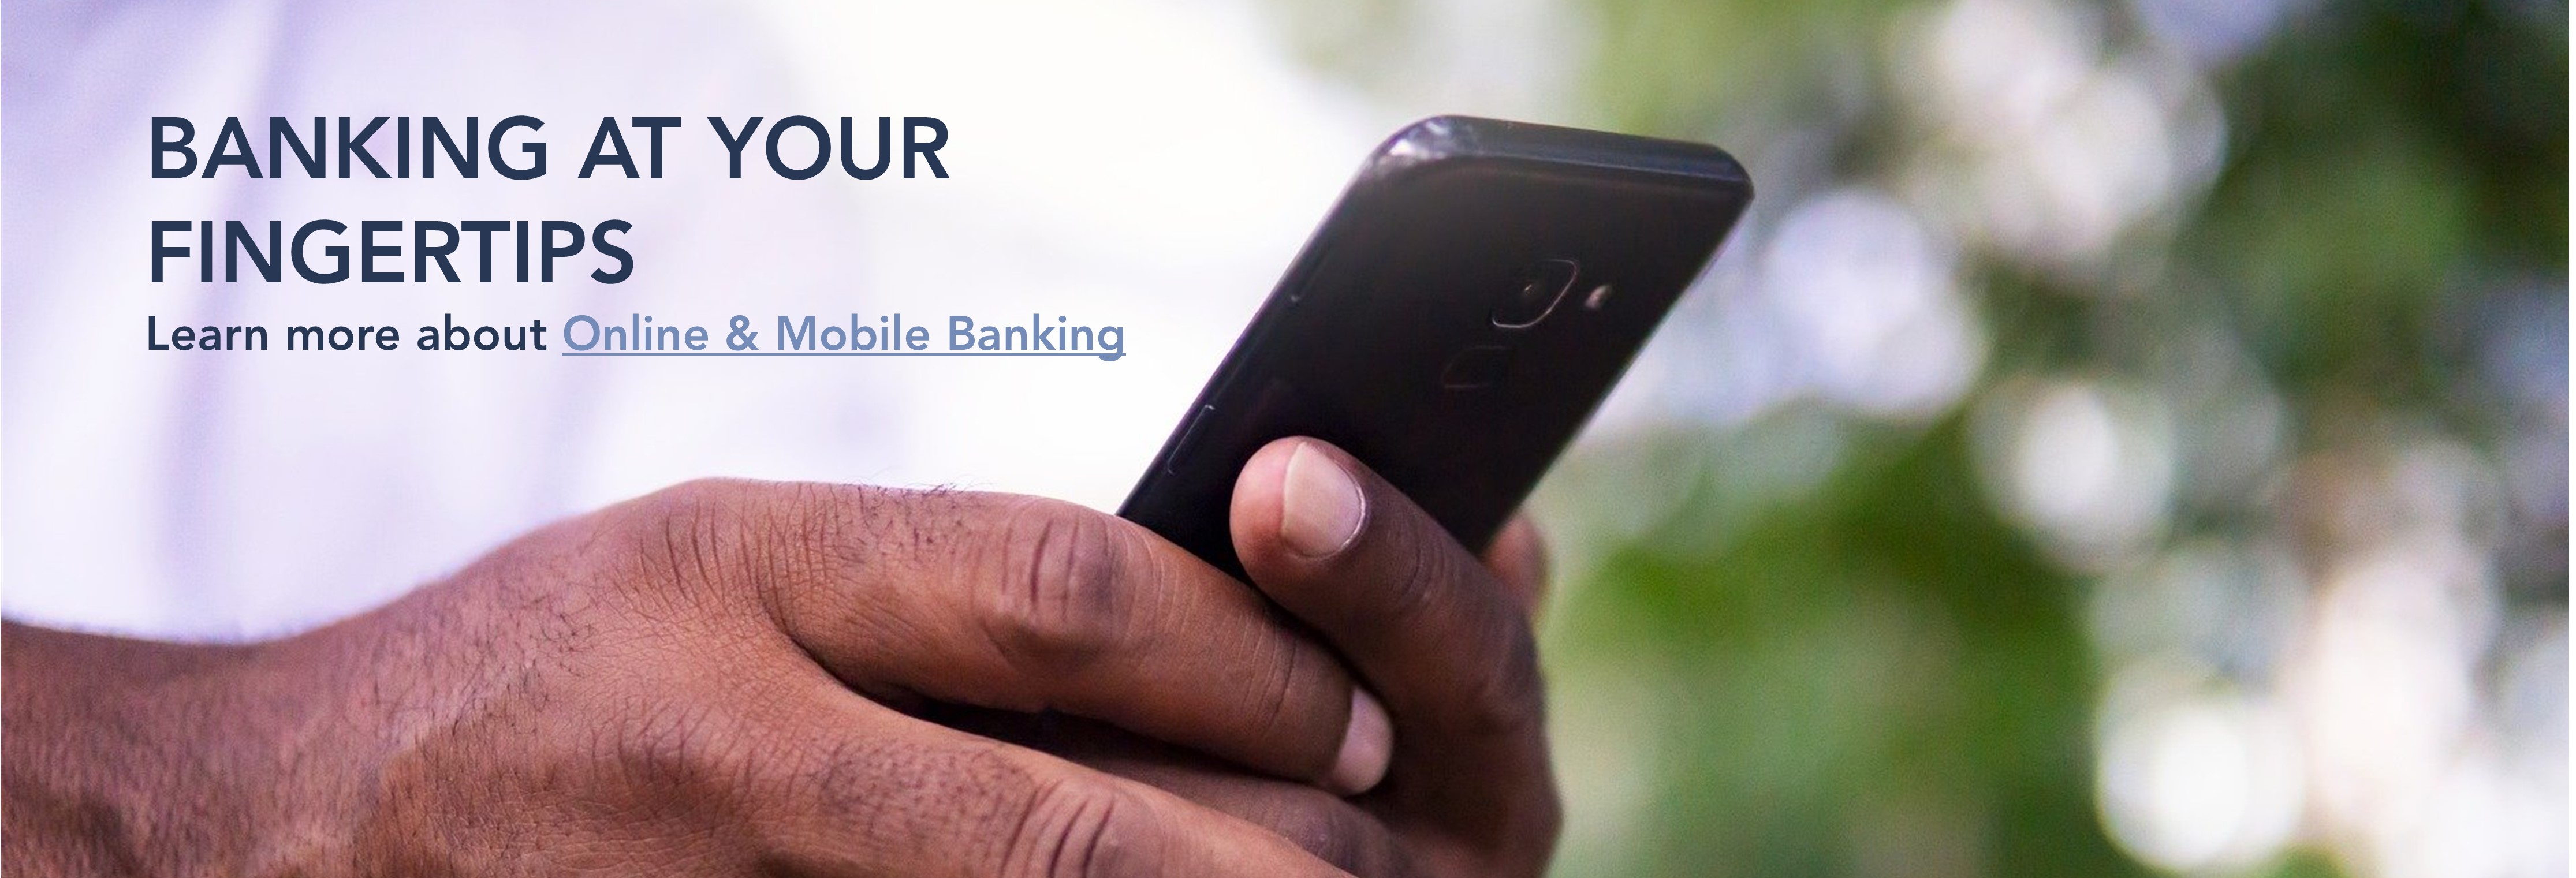 Banking at your fingertips. Learn more about Online & Mobile Banking